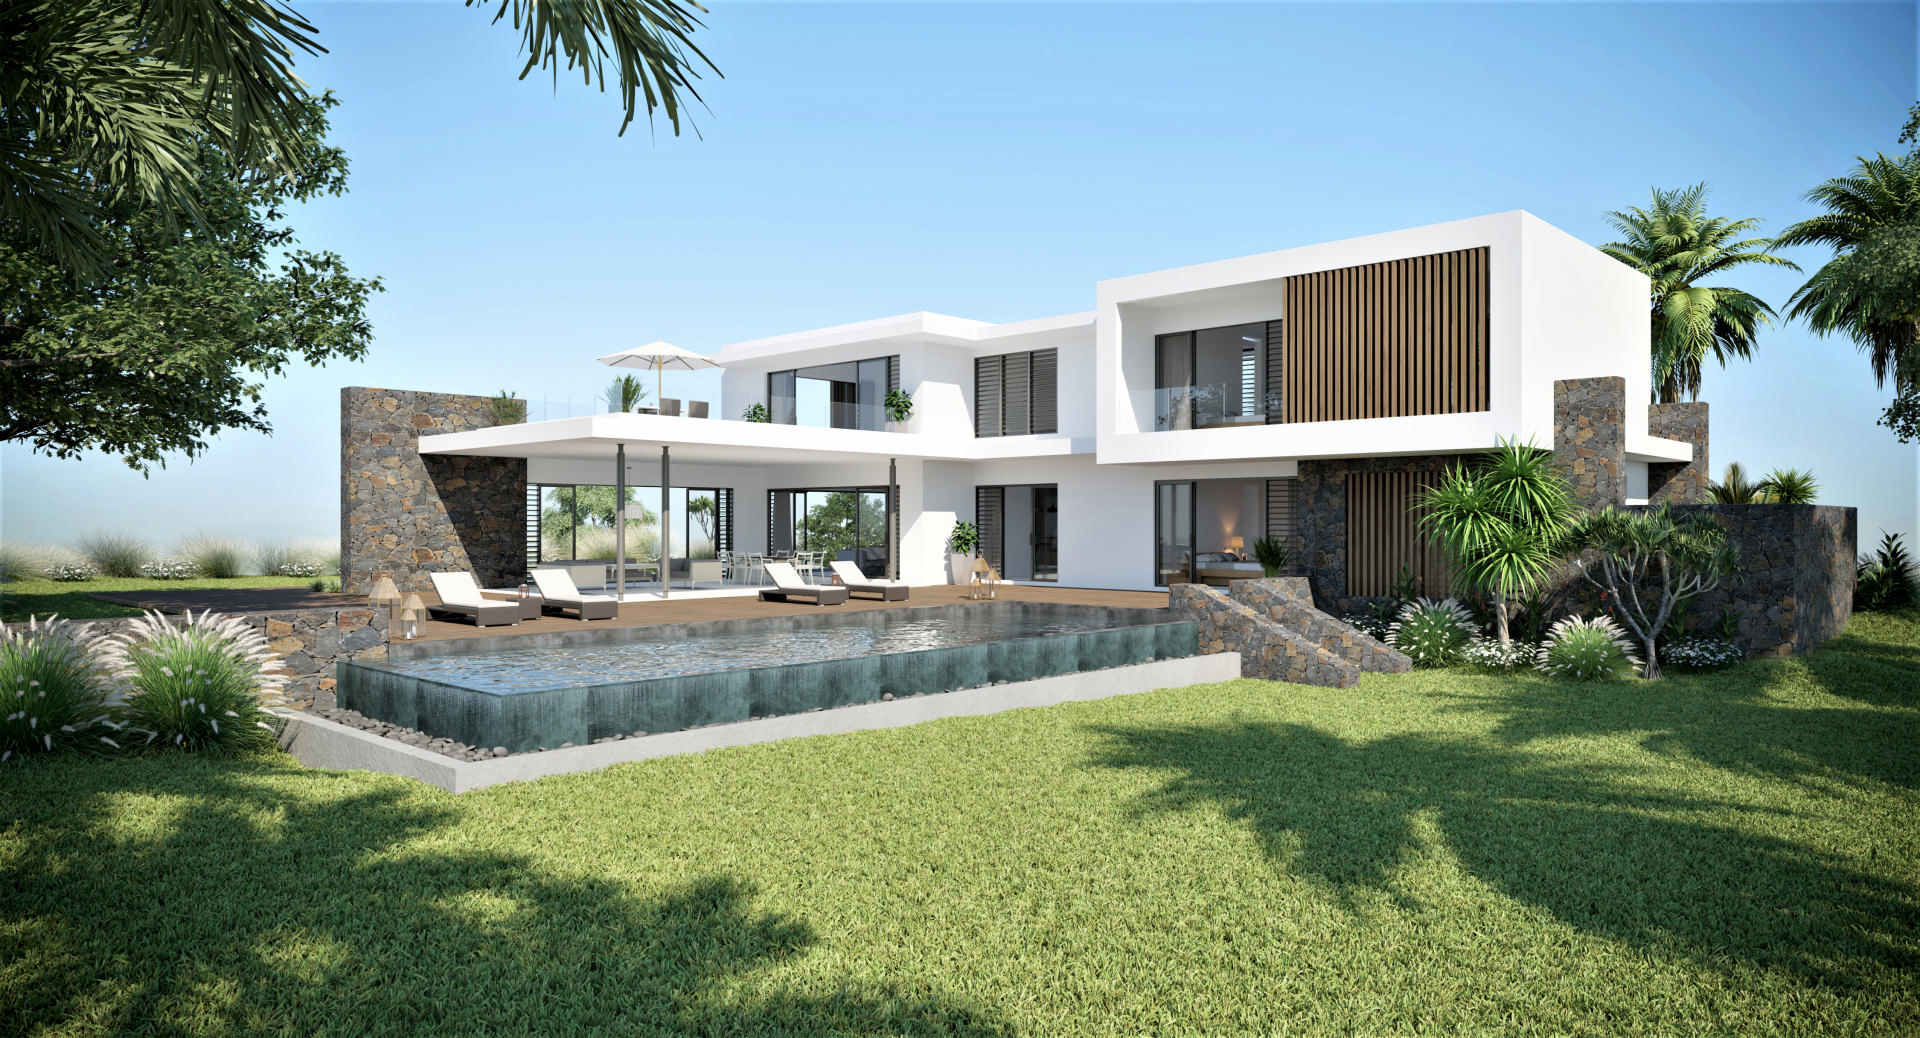 IRS Villa accessible to foreigners - Beau Champ